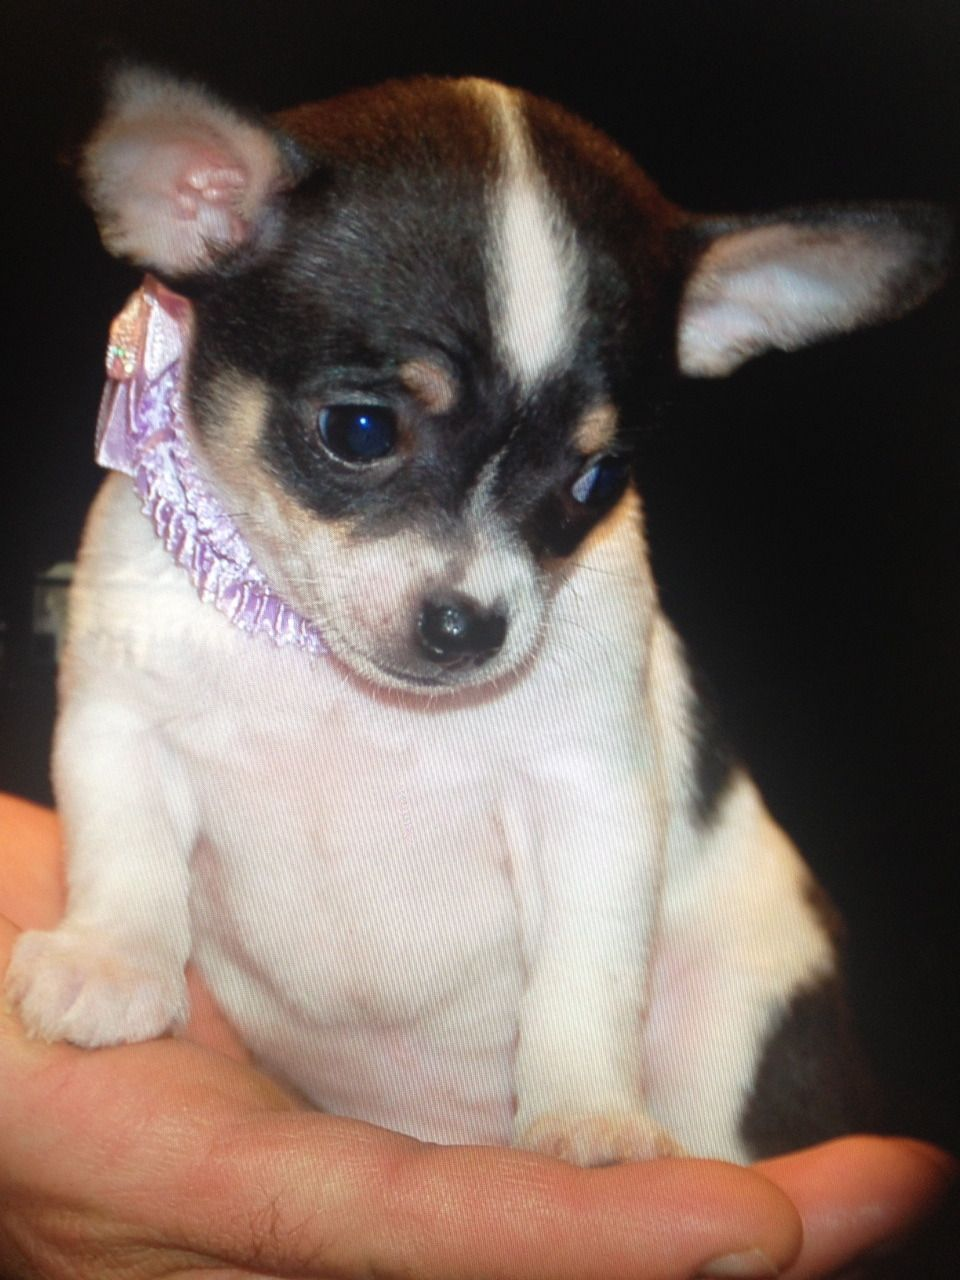 Extra Tiny Teacup Chihuahua Puppies Short Cobby Bodies With